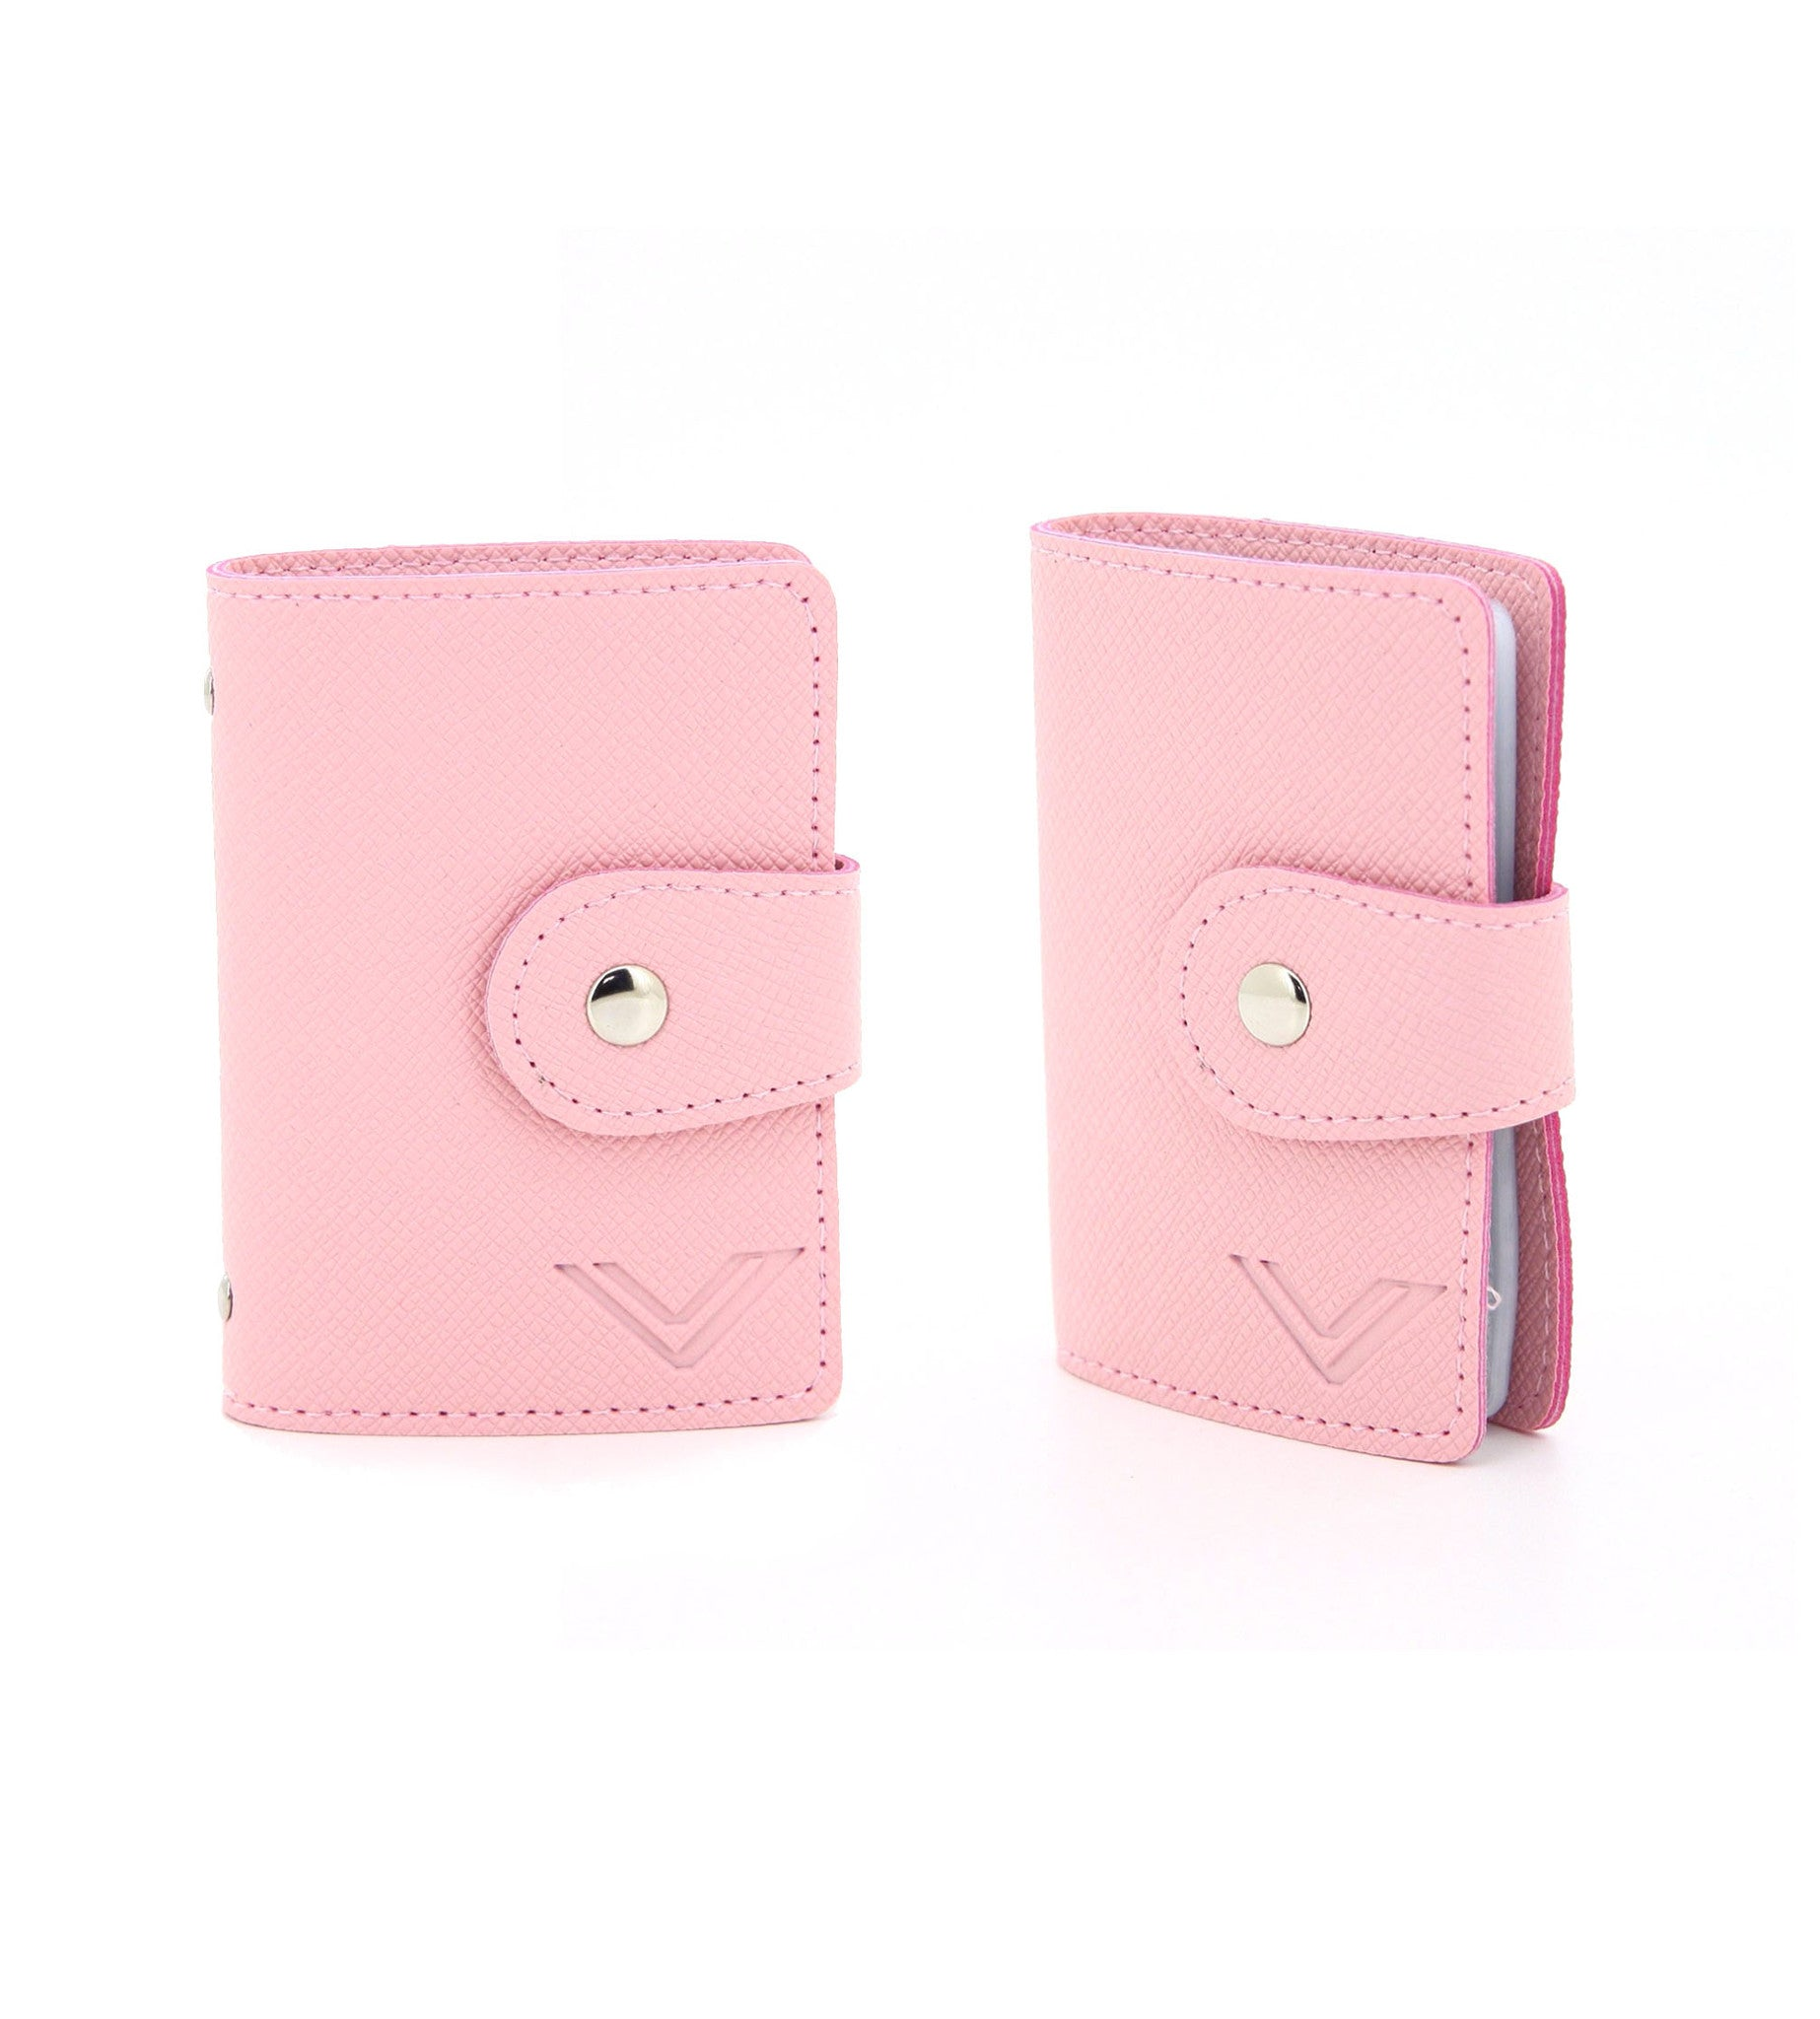 C14SP518BPx2 Cardholder Pair (Baby Pink)